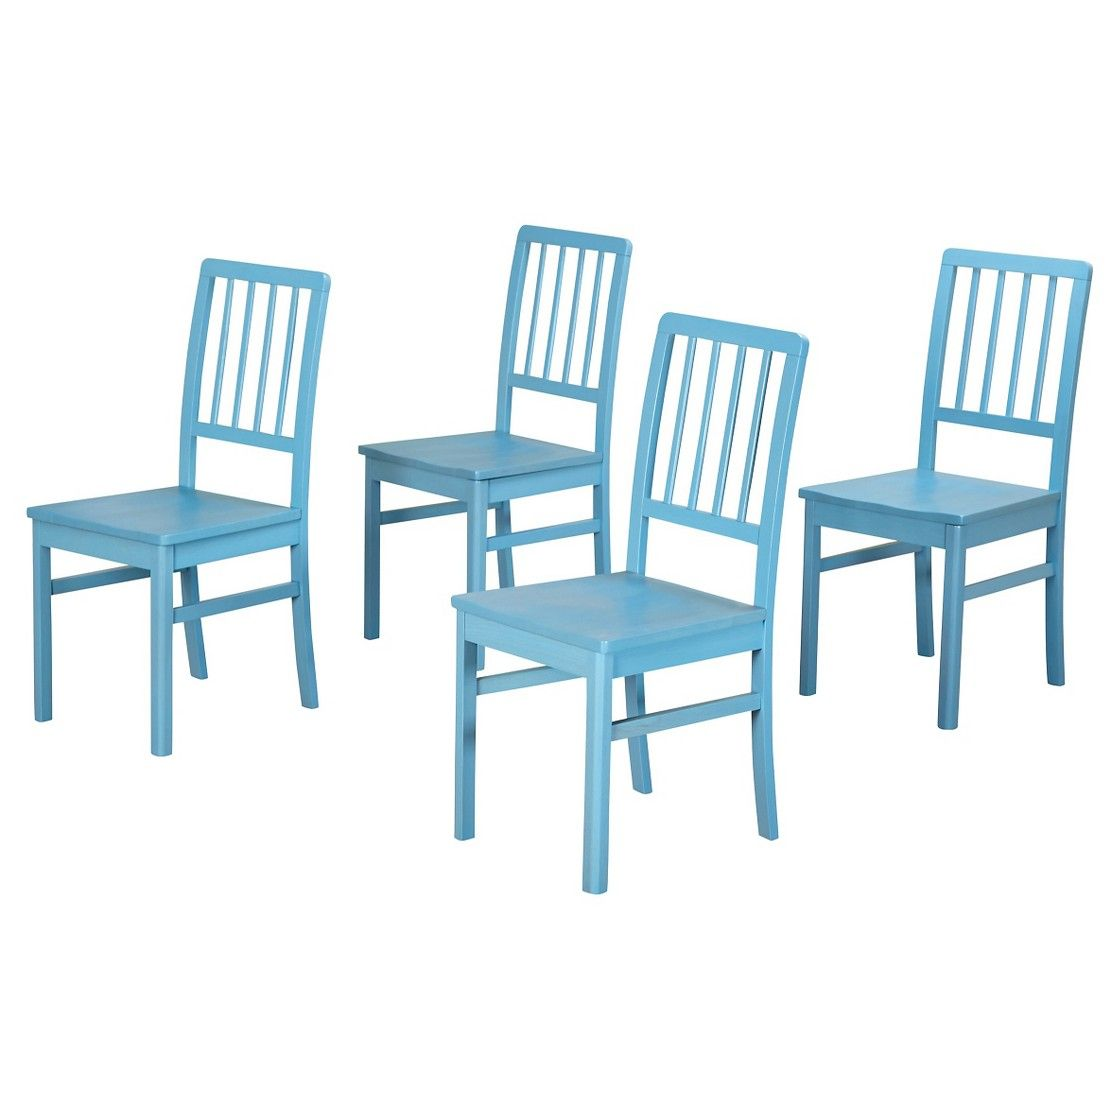 Camden Wood Slatback Dining Chair - Set of 4